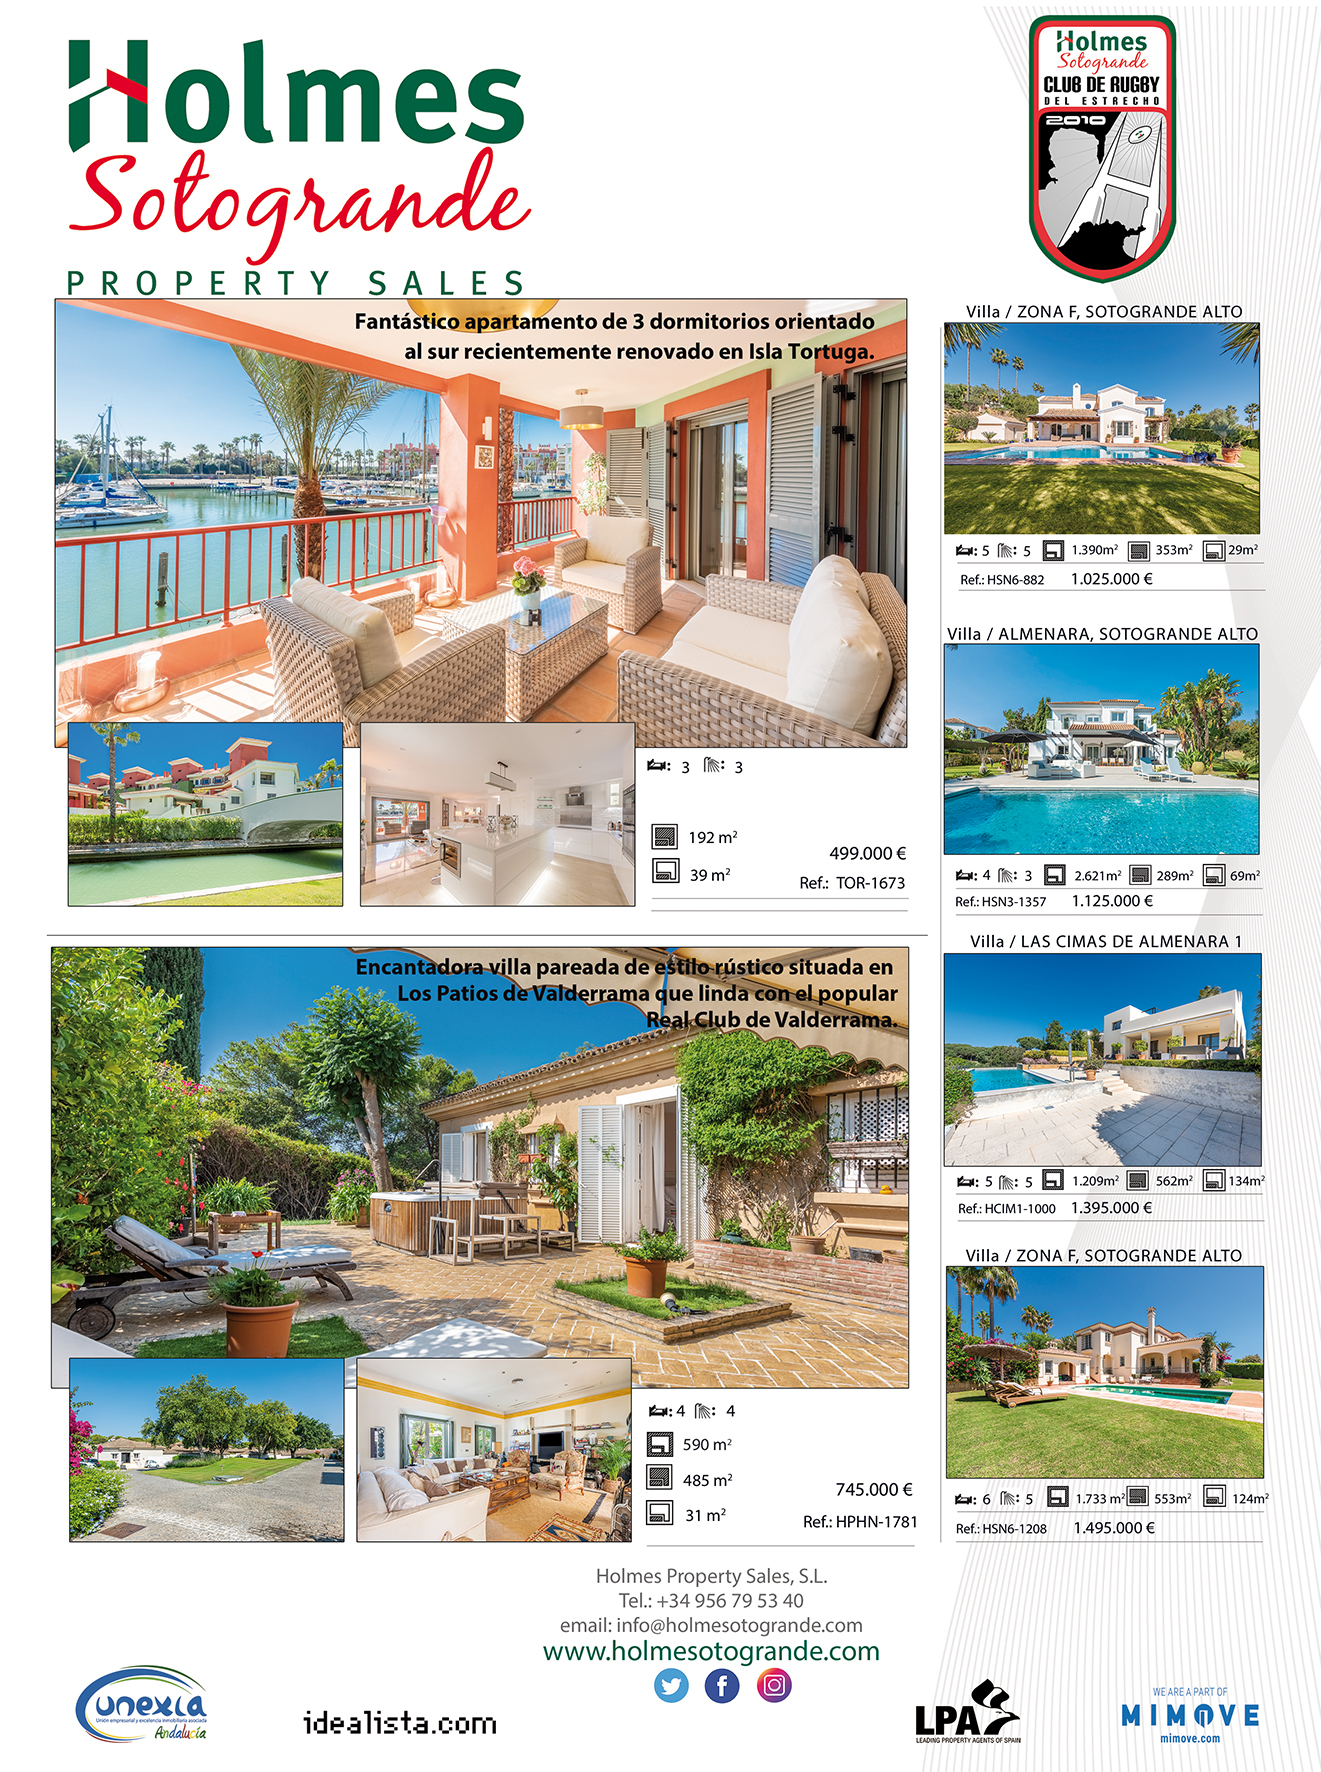 varied selection of properties for sale in Sotogrande